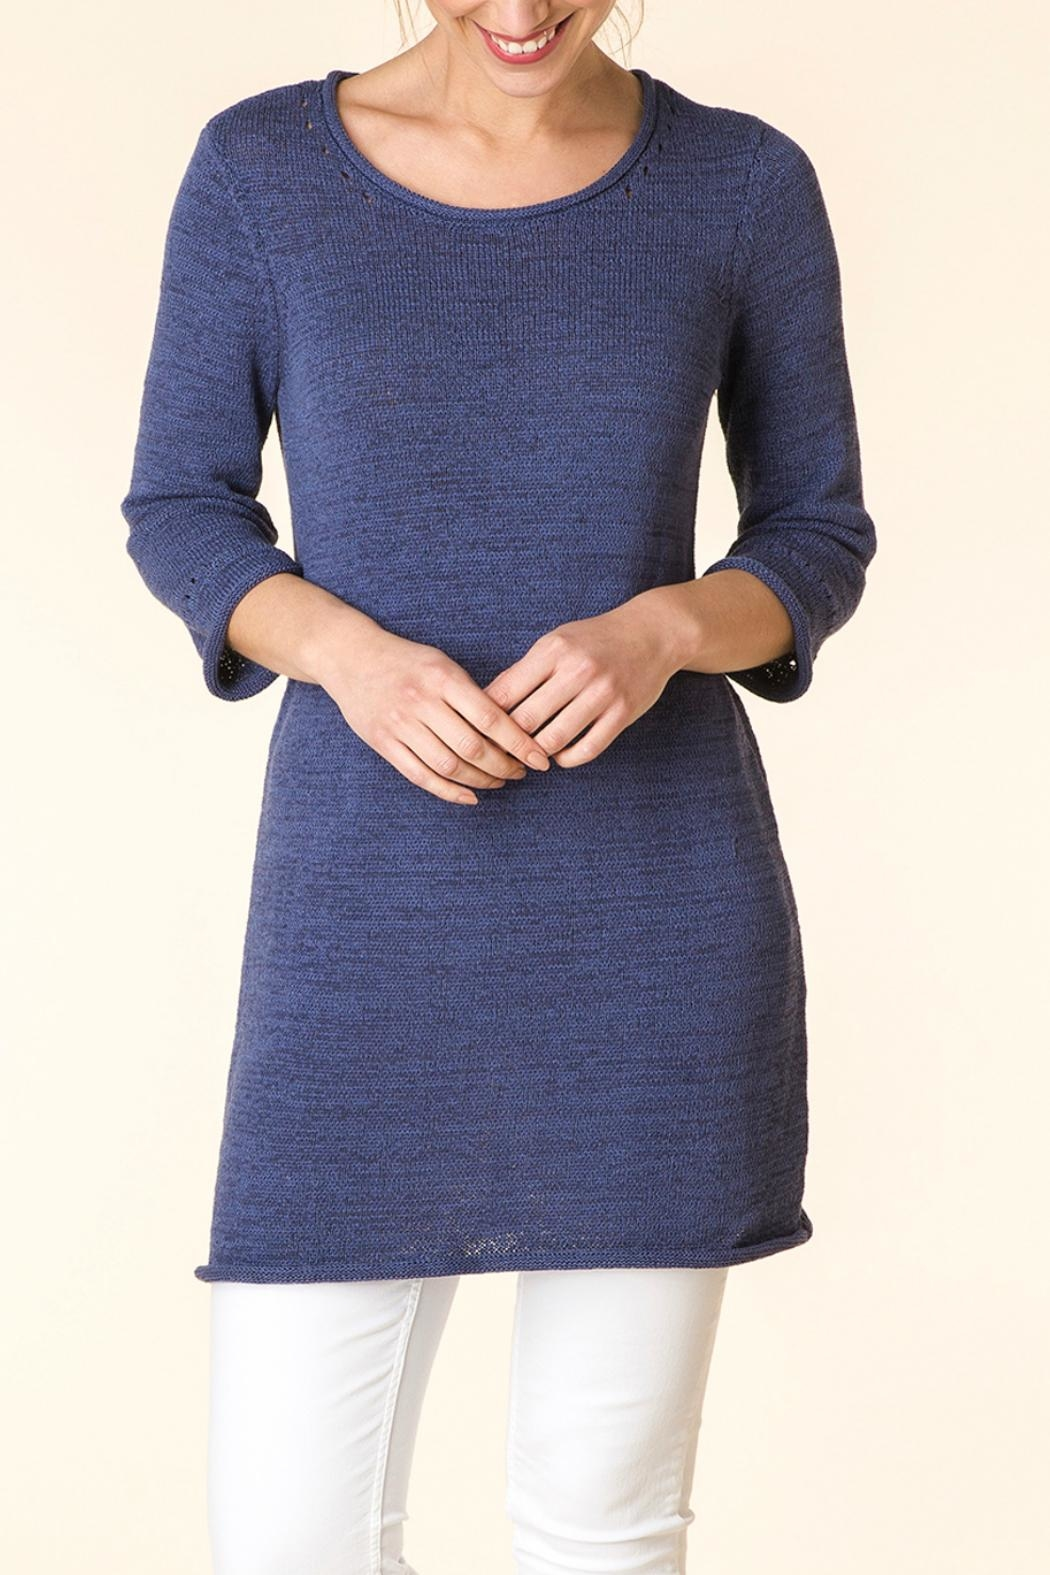 Yest Blue Knit Tunic - Front Full Image